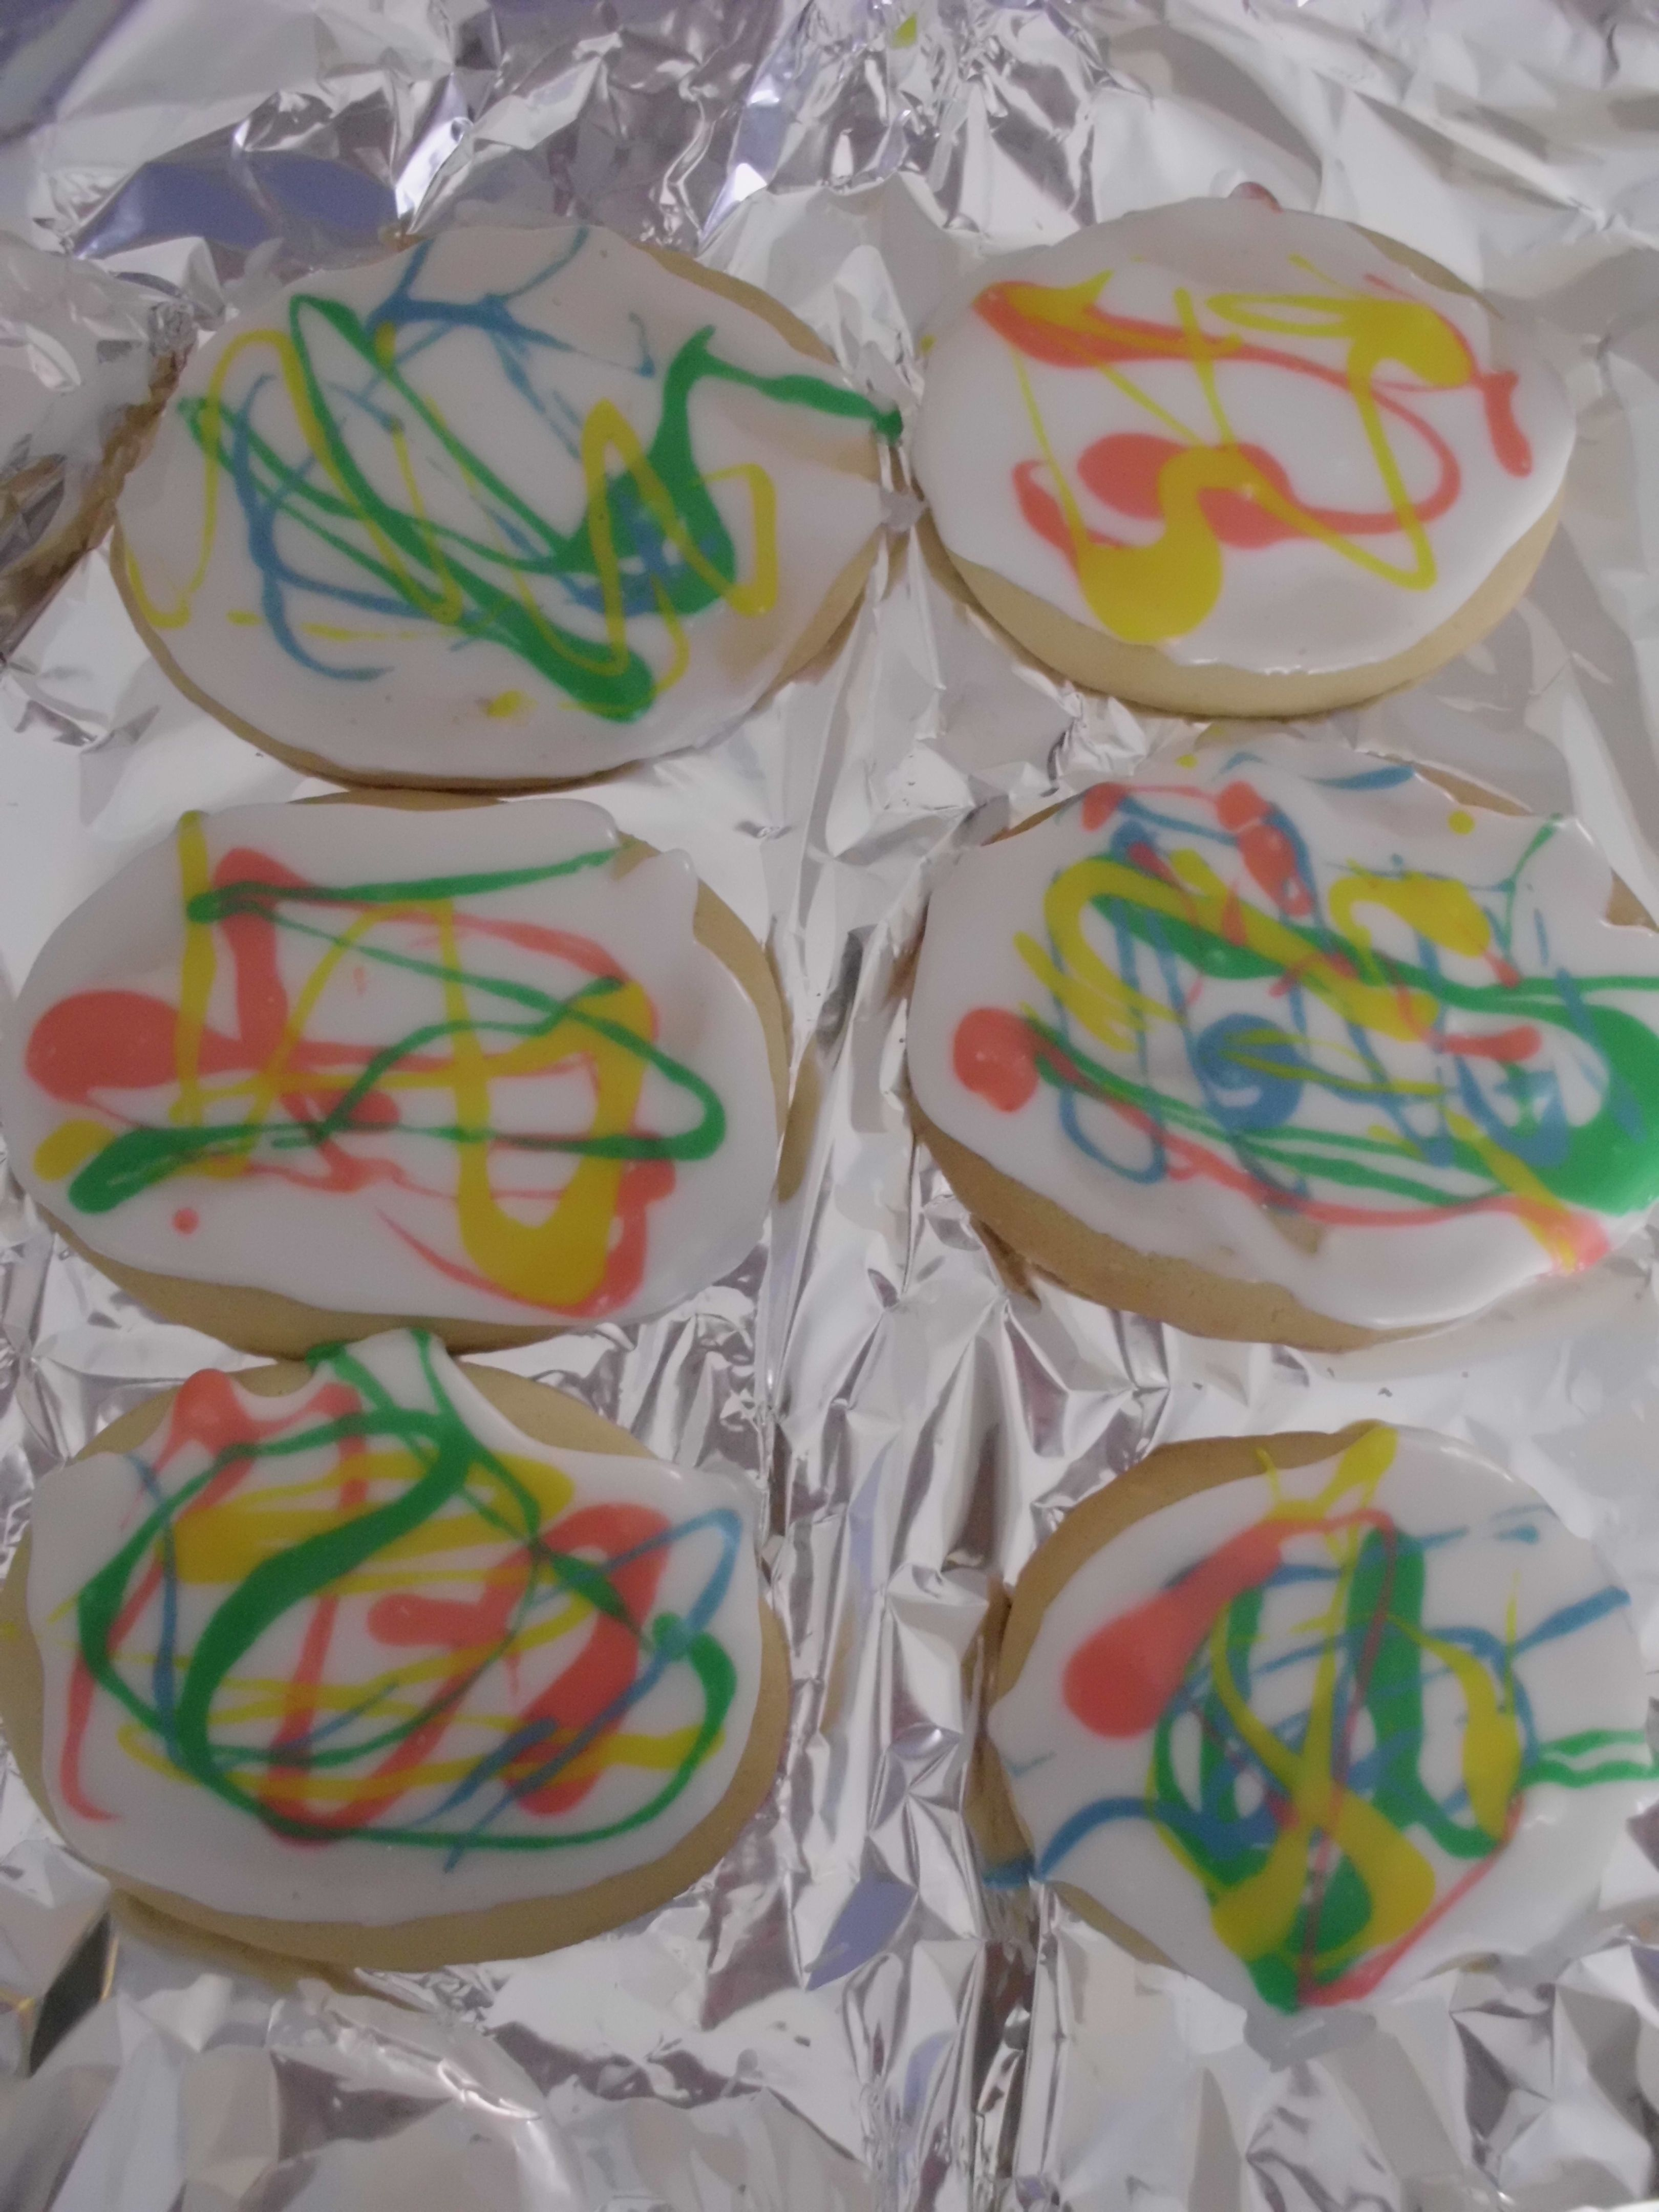 Easter cookies 'painted' with frosting, Jackson Pollock style